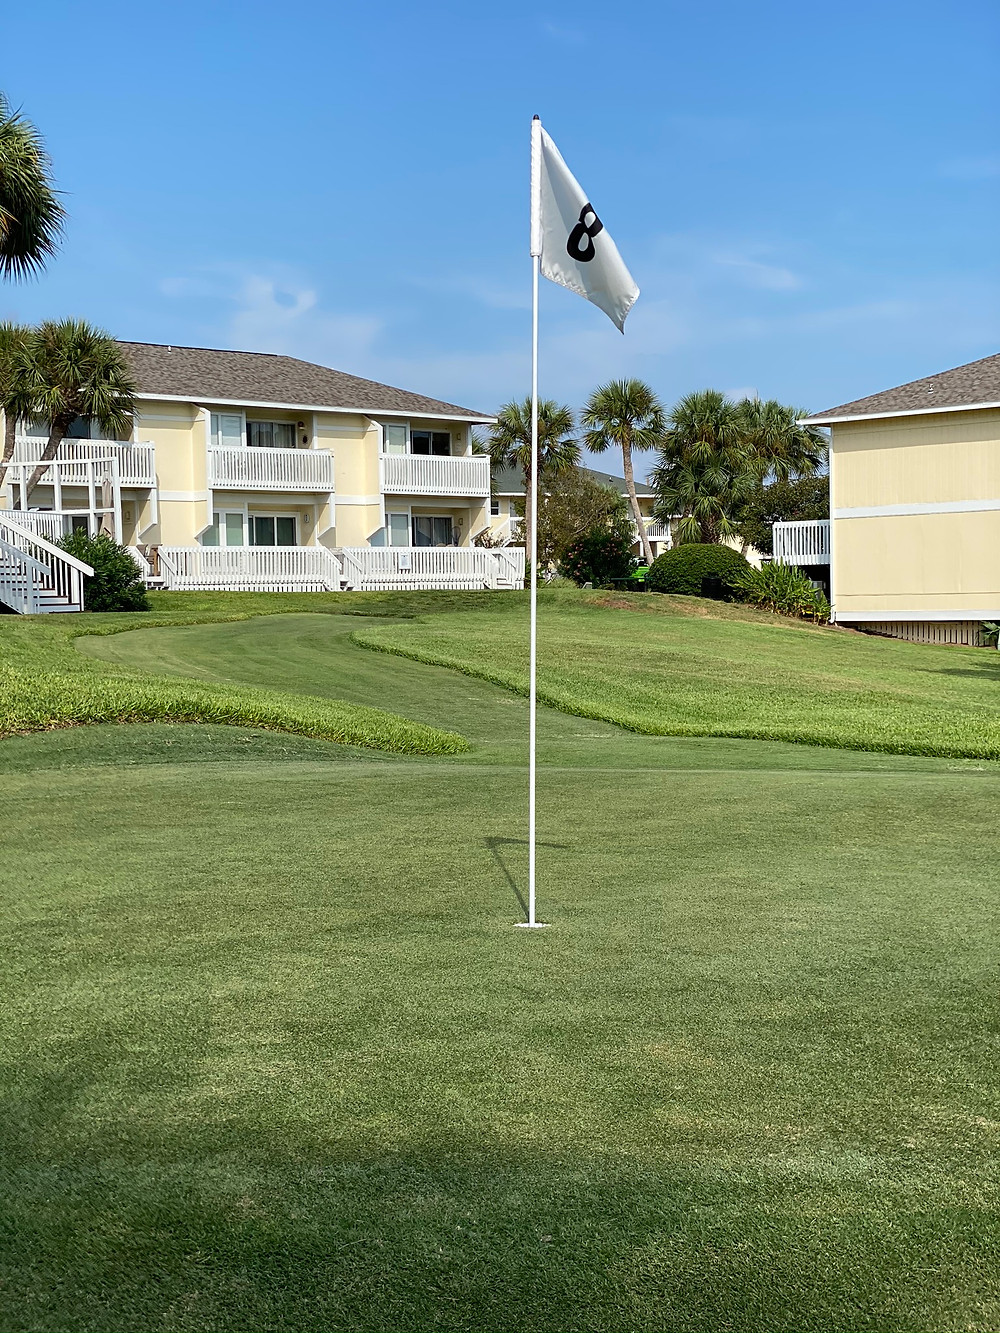 Golf Course at Sandpiper Cove Condominiums in Destin, FL